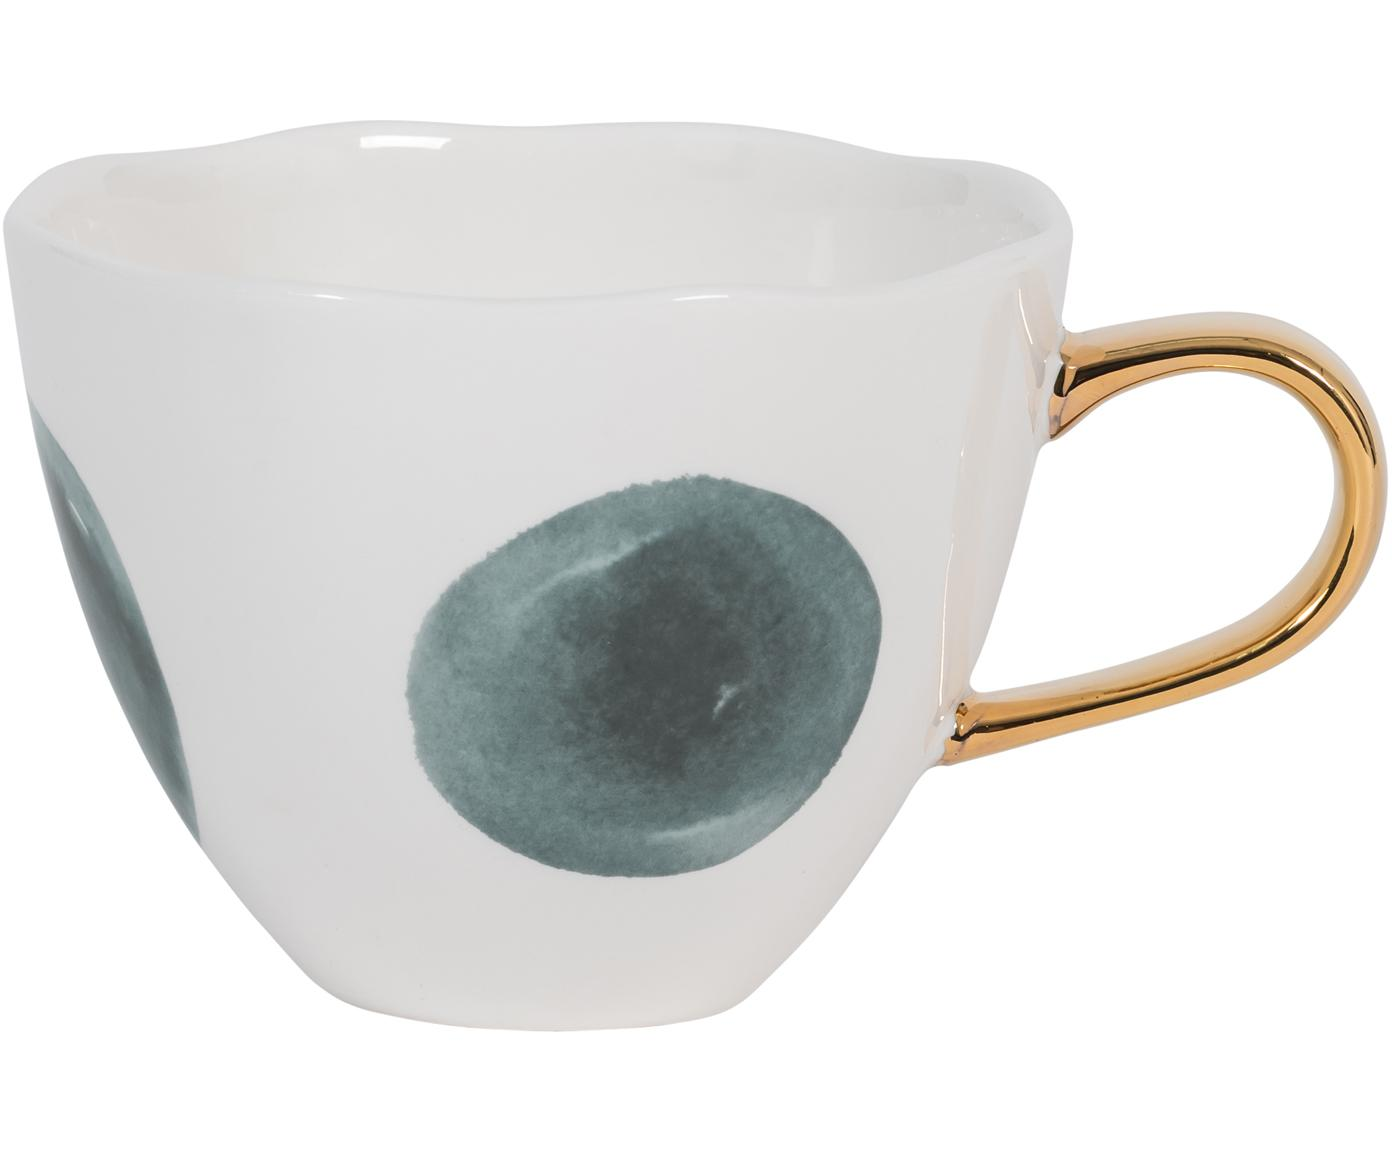 Tazza con manico dorato Good Morning, Terracotta, Bianco, blu, Ø 11 x Alt. 8 cm